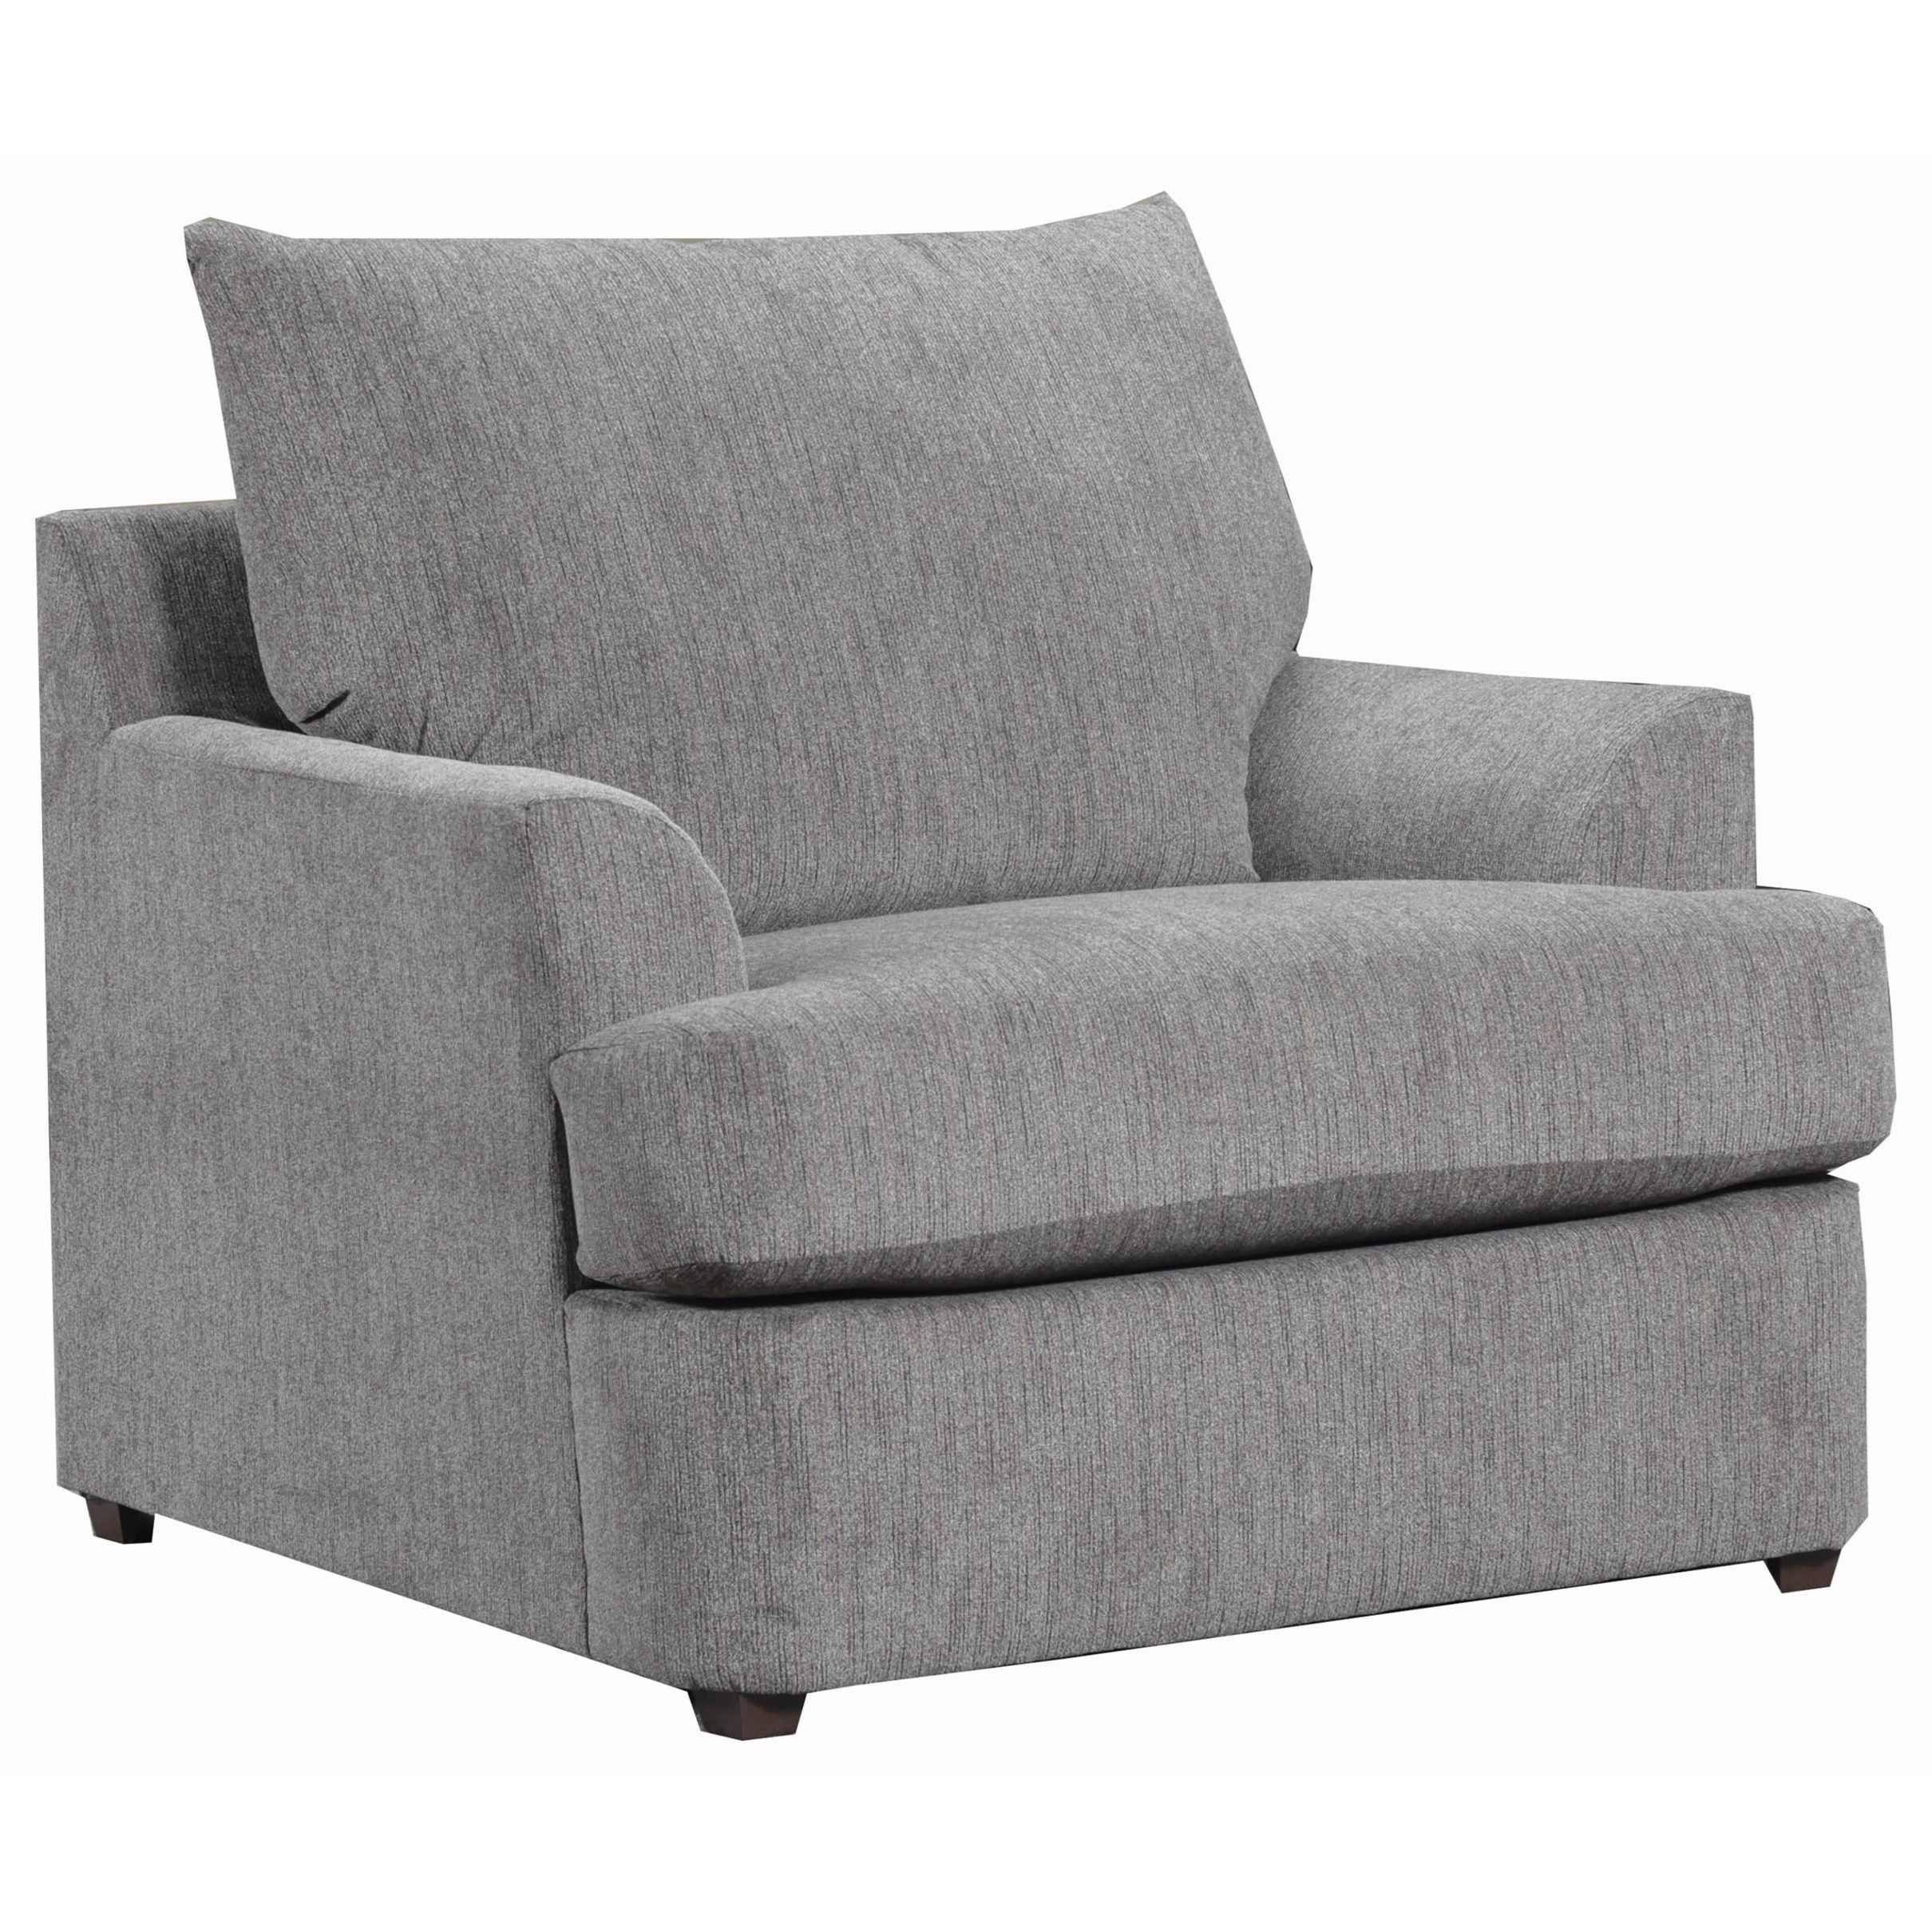 8540BR Casual Chair by United Furniture Industries at Dream Home Interiors